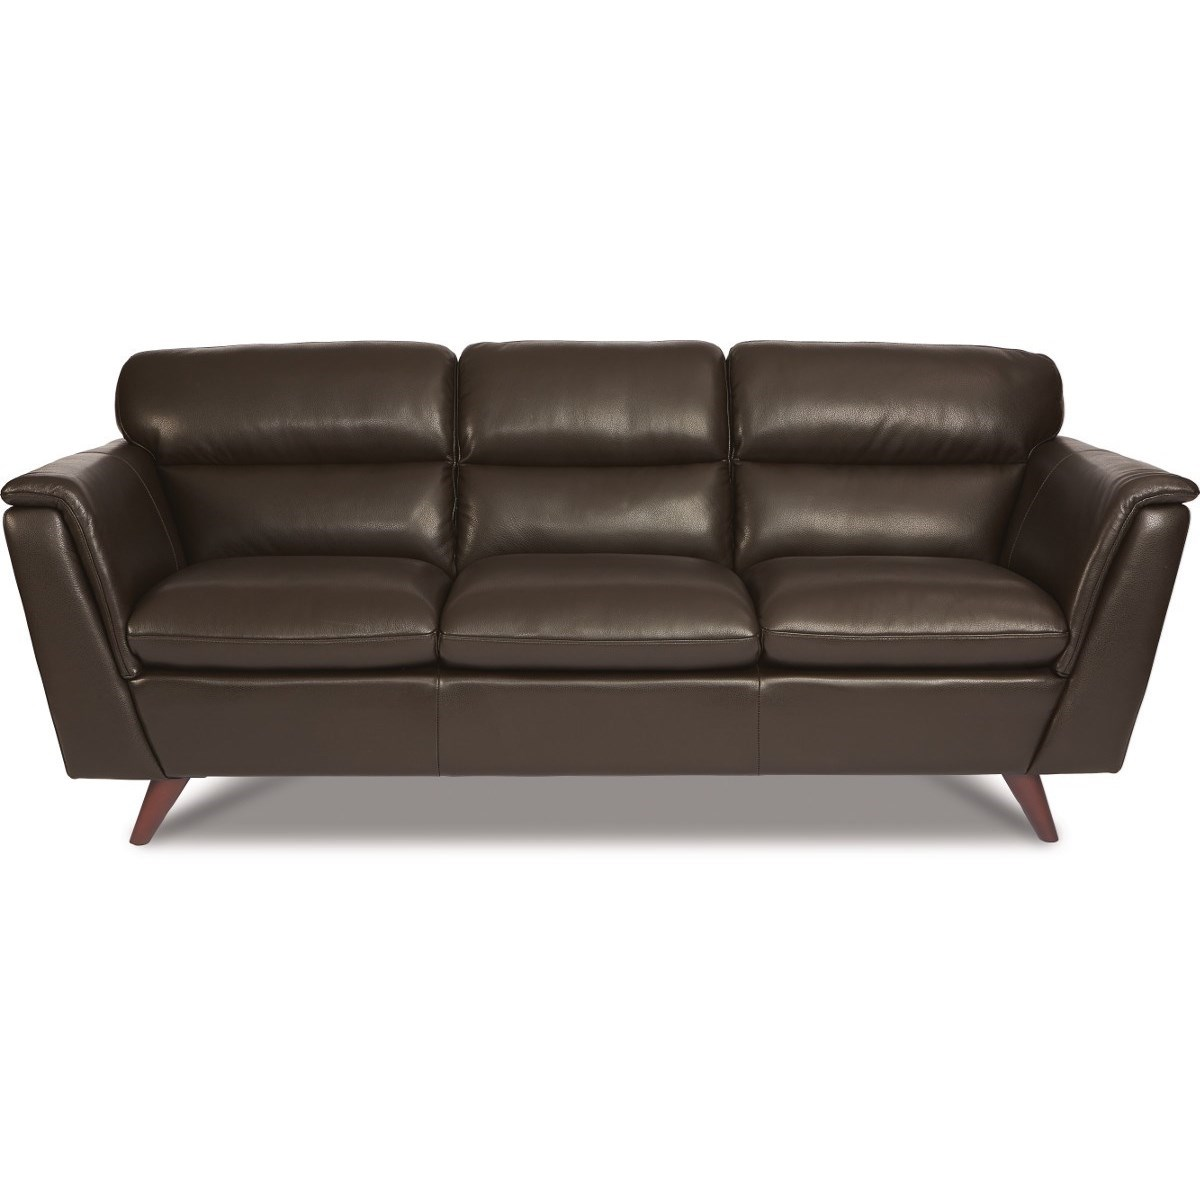 La-Z-Boy Arrow Mid Century Modern Leather Sofa | SuperStore ...